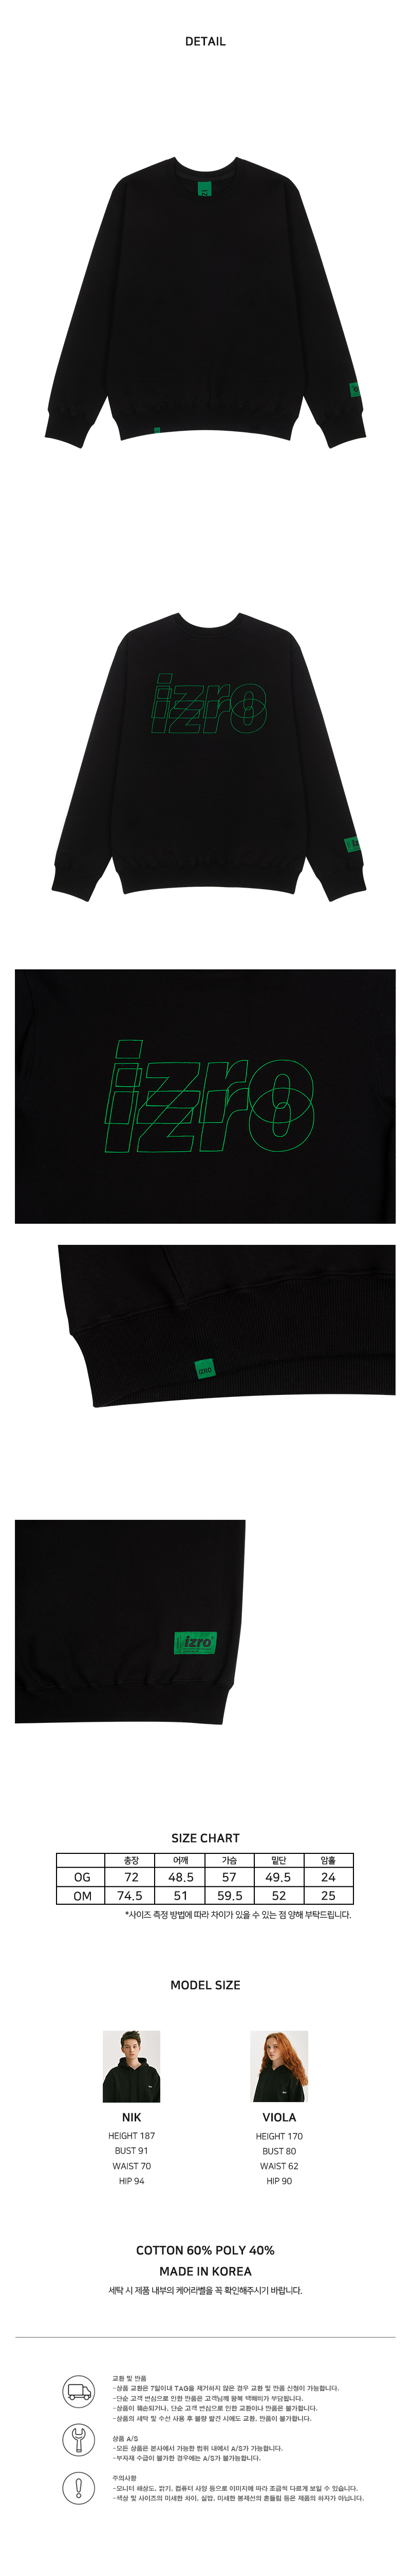 9. DOUBLE LOGO SWEAT SHIRTS_BK.jpg